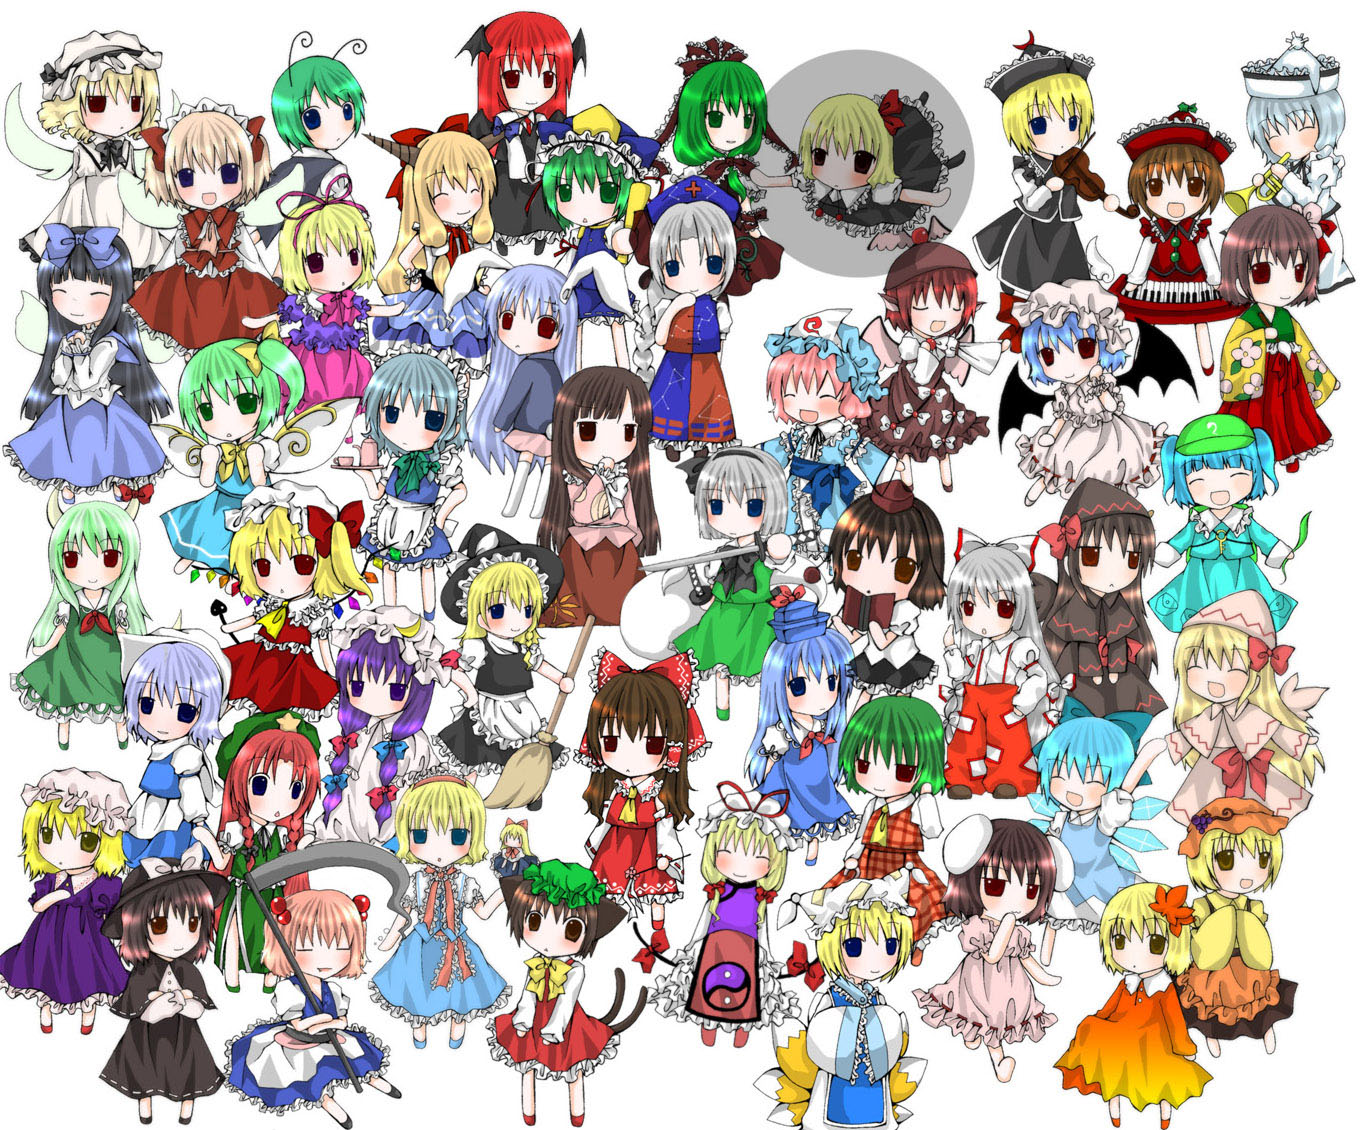 aki_minoriko aki_shizuha alice_margatroid animal_ears black_hair blonde_hair blue_eyes blue_hair book brown_eyes brown_hair bunny_ears bunnygirl catgirl chen chibi chinese_clothes chinese_dress cirno daiyousei demon doll dress ex_keine fairy flandre_scarlet foxgirl fujiwara_no_mokou gray_hair green_eyes green_hair group hakurei_reimu hat hieda_no_akyuu hong_meiling horns houraisan_kaguya ibuki_suika inaba_tewi izayoi_sakuya japanese_clothes kagiyama_hina kamishirasawa_keine kawashiro_nitori kazami_yuuka kimoke-ne kirisame_marisa koakuma konpaku_youmu letty_whiterock lily_black lily_white long_hair luna_child lunasa_prismriver lyrica_prismriver maid maribel_han medicine_melancholy merlin_prismriver miko multiple_tails myon mystia_lorelei onozuka_komachi patchouli_knowledge pink_hair purple_eyes purple_hair red_eyes red_hair reisen_udongein_inaba remilia_scarlet ribbons rumia saigyouji_yuyuko scythe shameimaru_aya shanghai_doll shiki_eiki short_hair skirt star_sapphire sunny_milk sword tail thighhighs touhou usami_renko vampire weapon wings witch wriggle_nightbug yagokoro_eirin yakumo_ran yakumo_yukari yellow_eyes